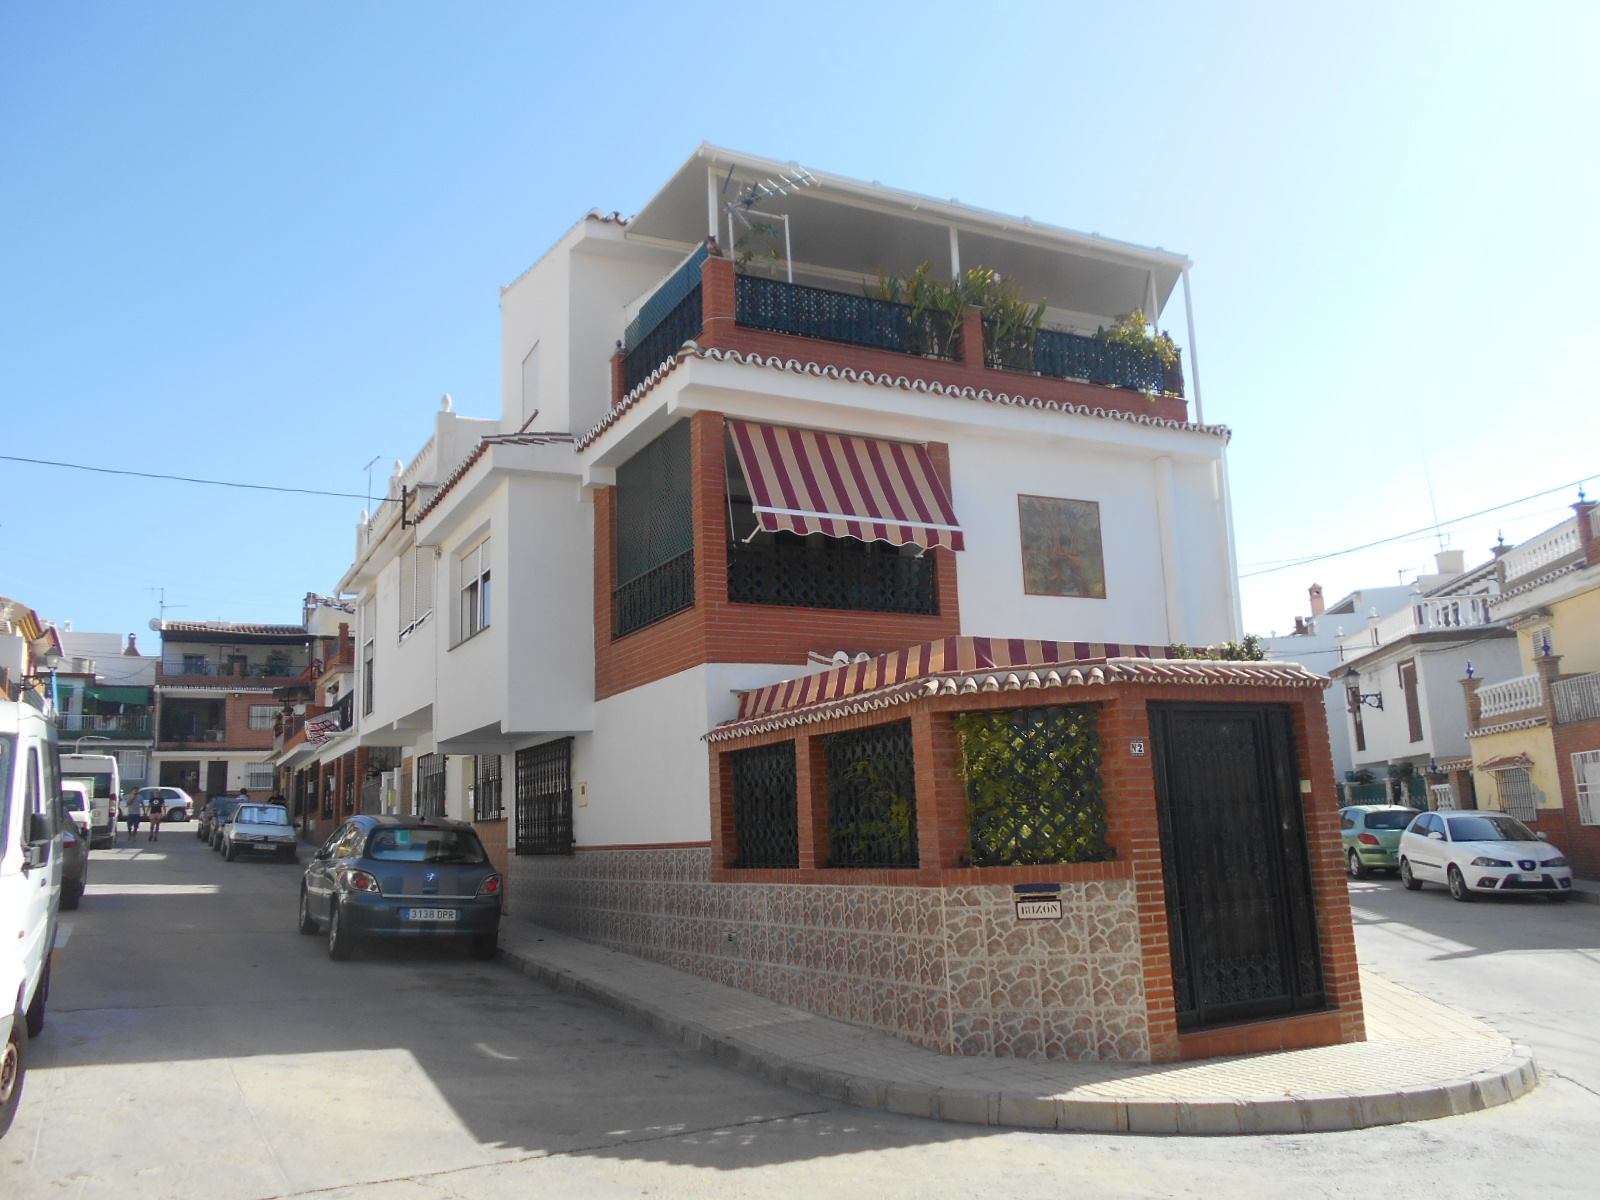 4 BEDROOM TOWNHOUSE VELEZ MALAGA FOR SALE